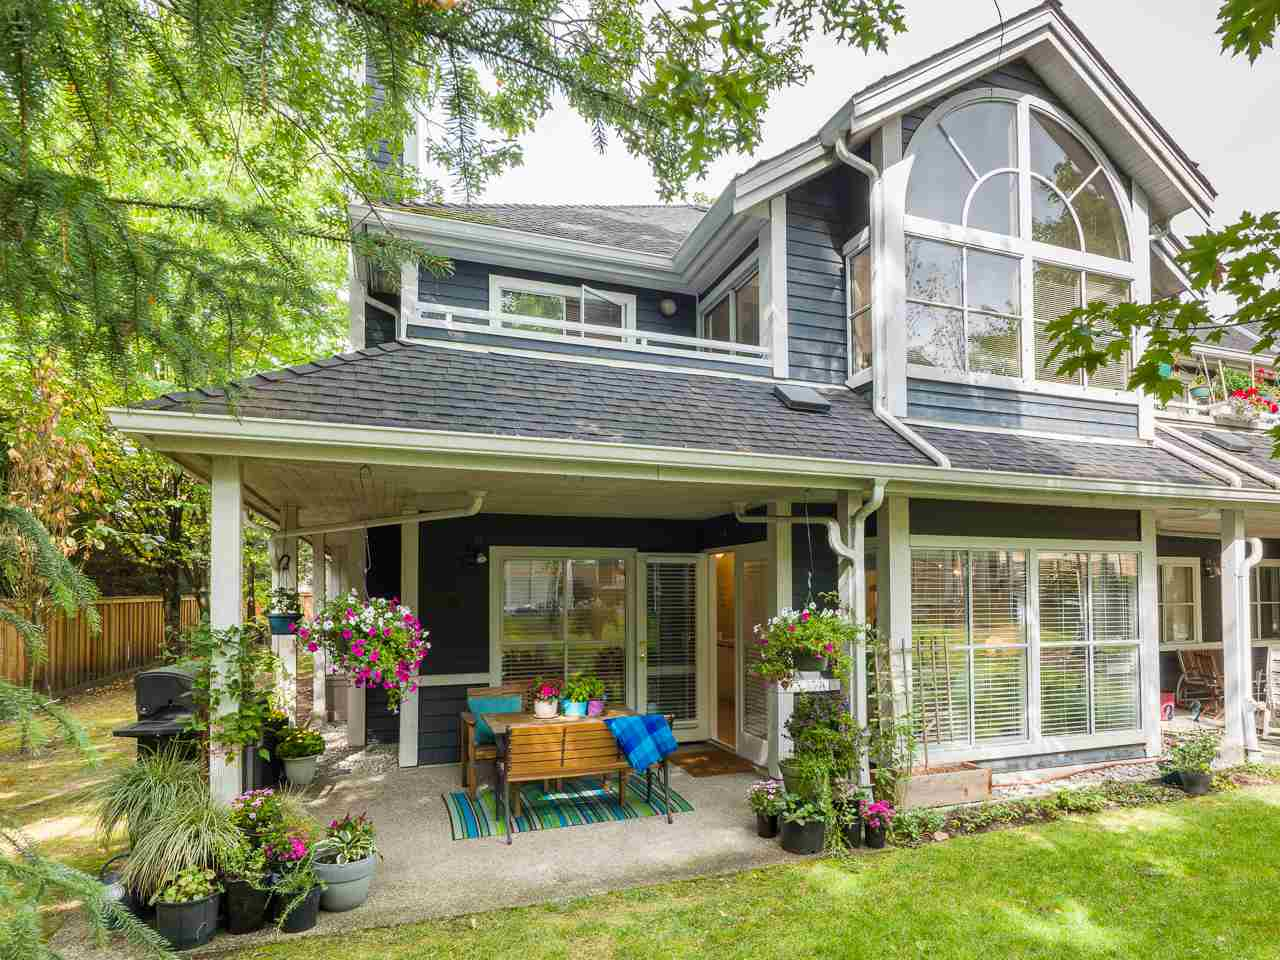 Sold: 118 - 2960 East 29th Avenue, Vancouver, BC